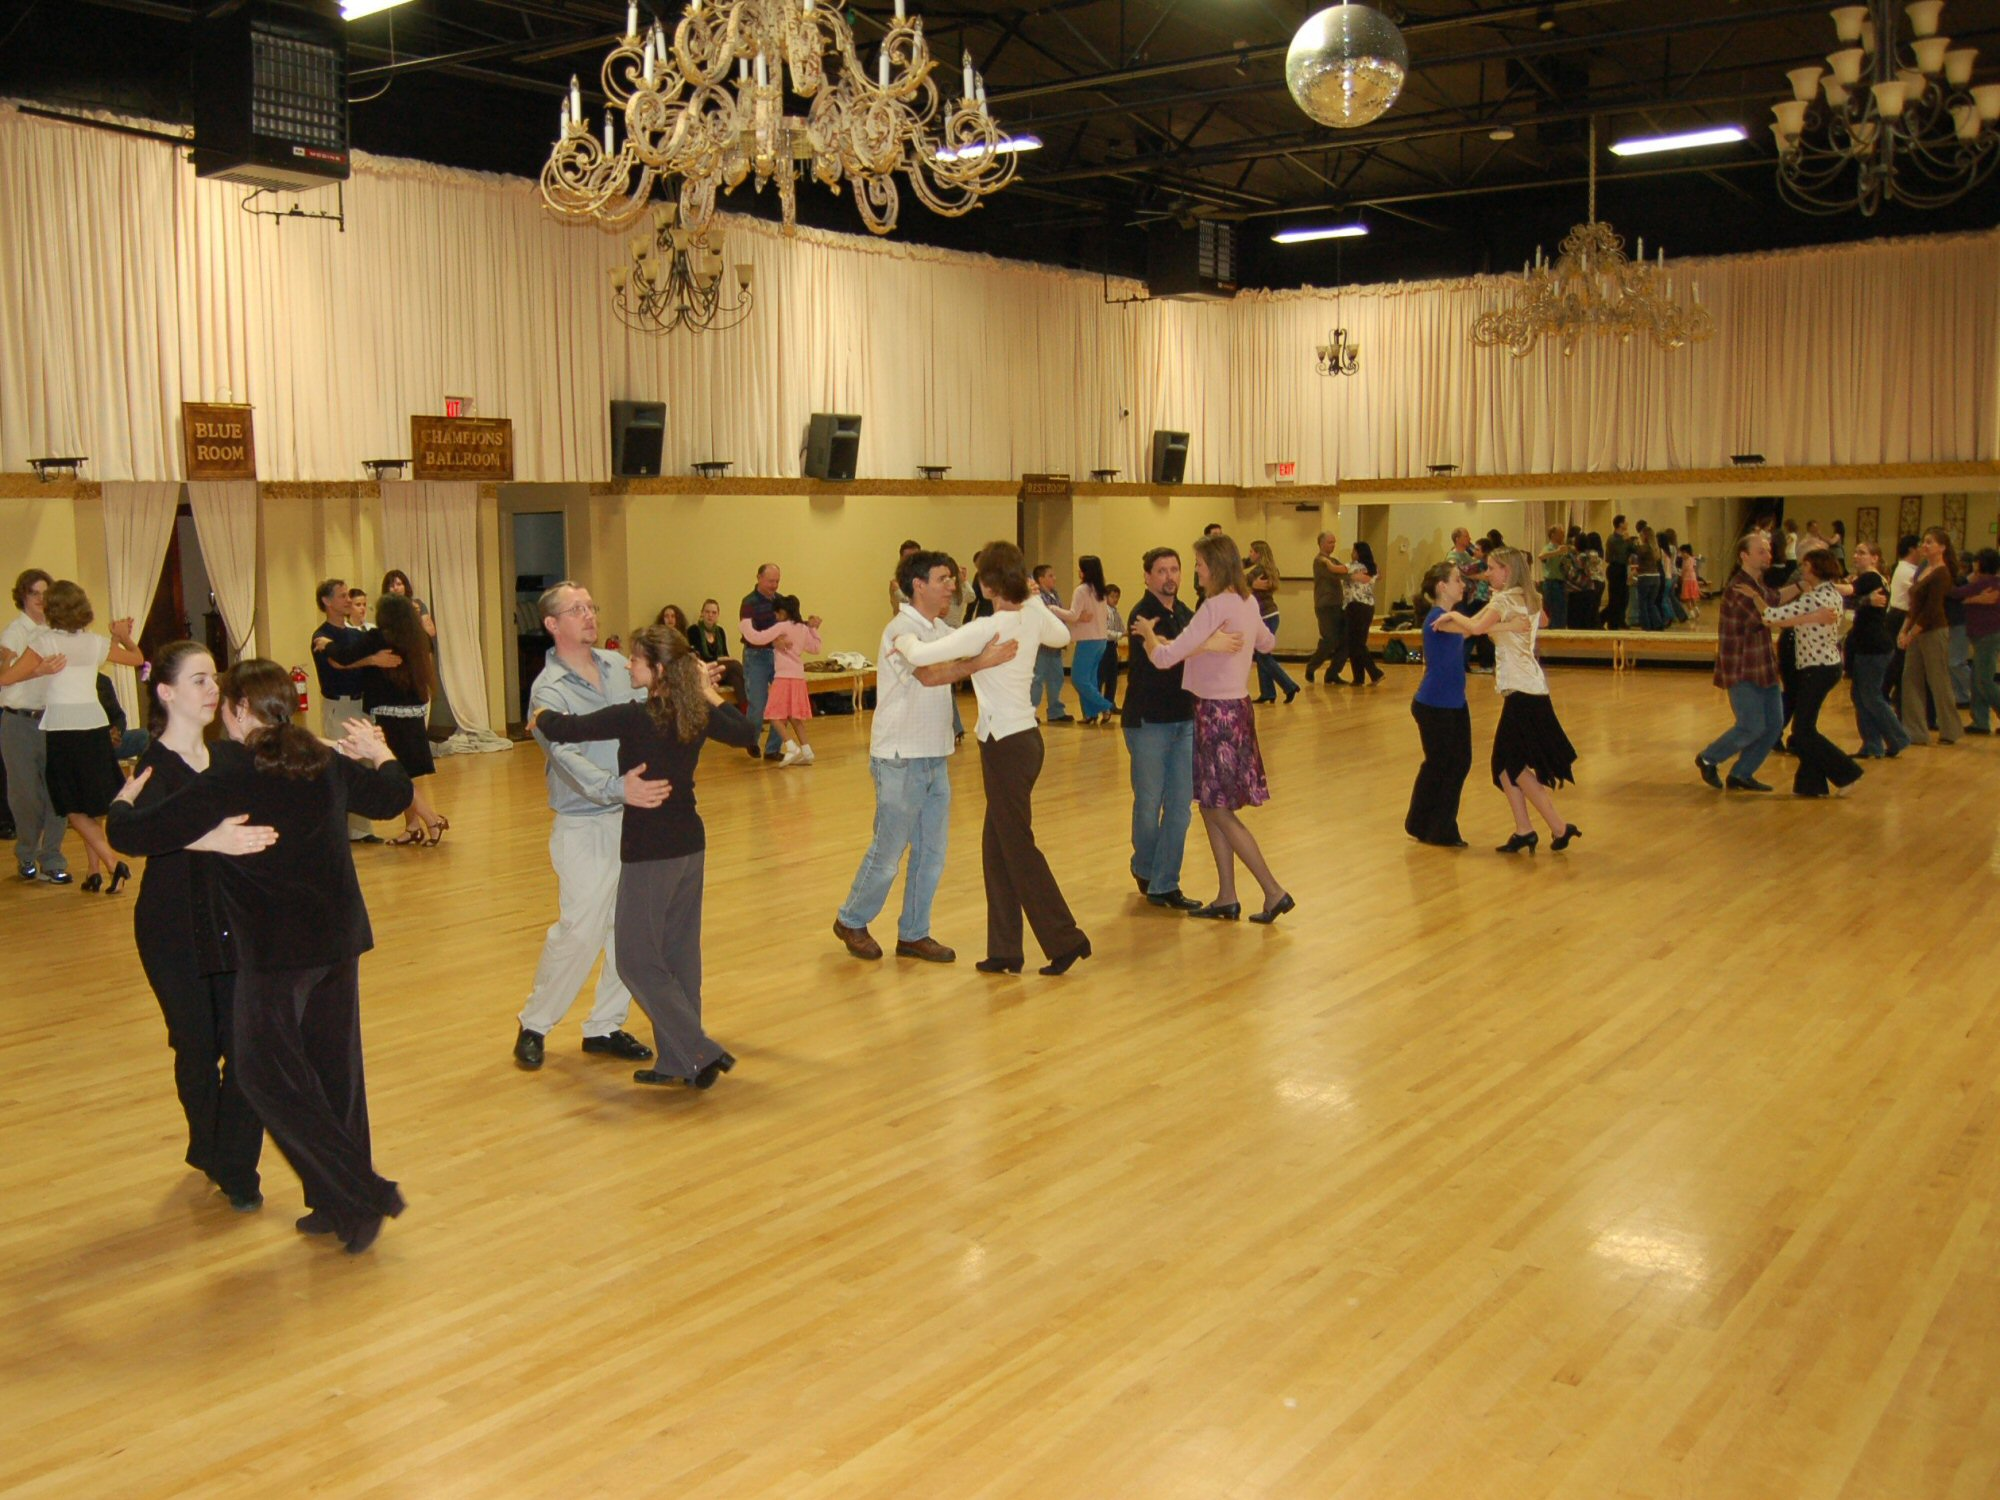 Ballroom Dancing High Quality Background on Wallpapers Vista